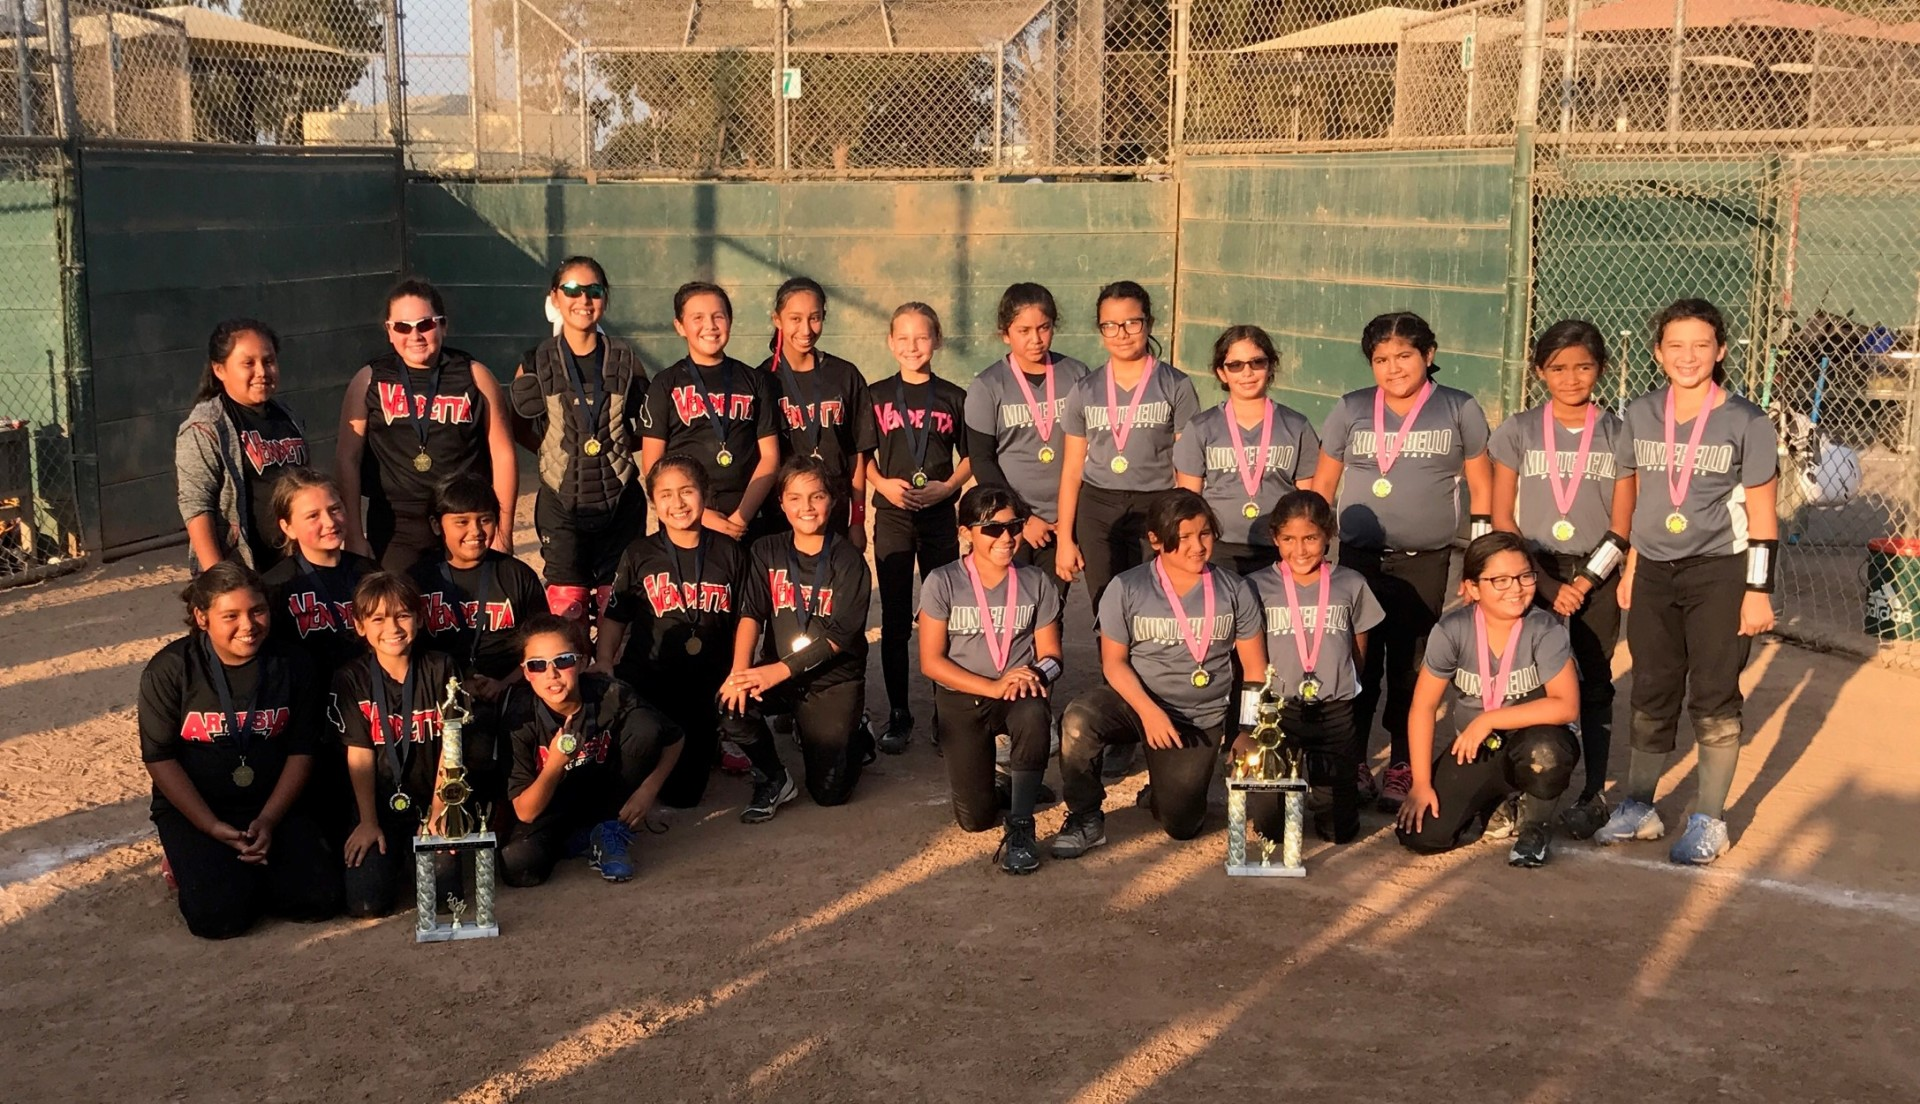 10u 1st Place - Vendetta and Runner Up - Montebello Pride